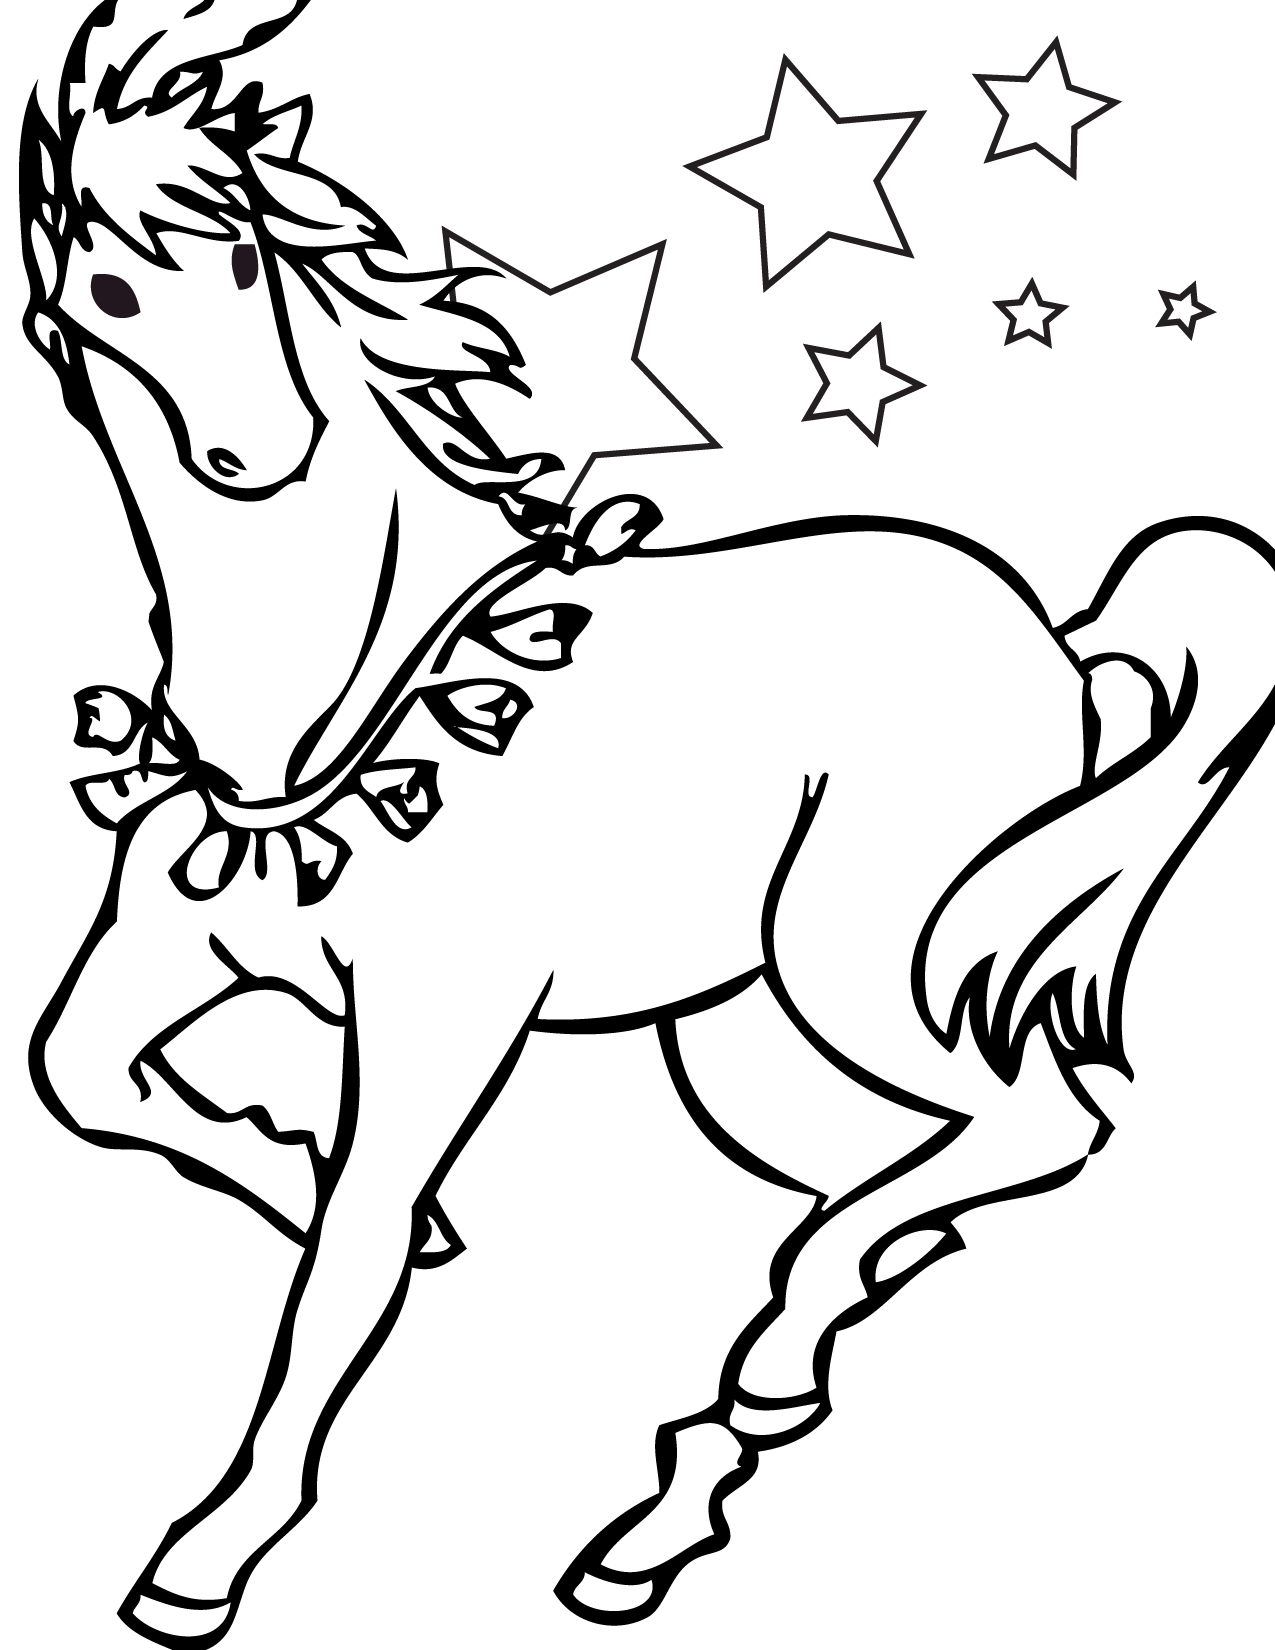 Free coloring pages - Free Coloring Pages Of Horses